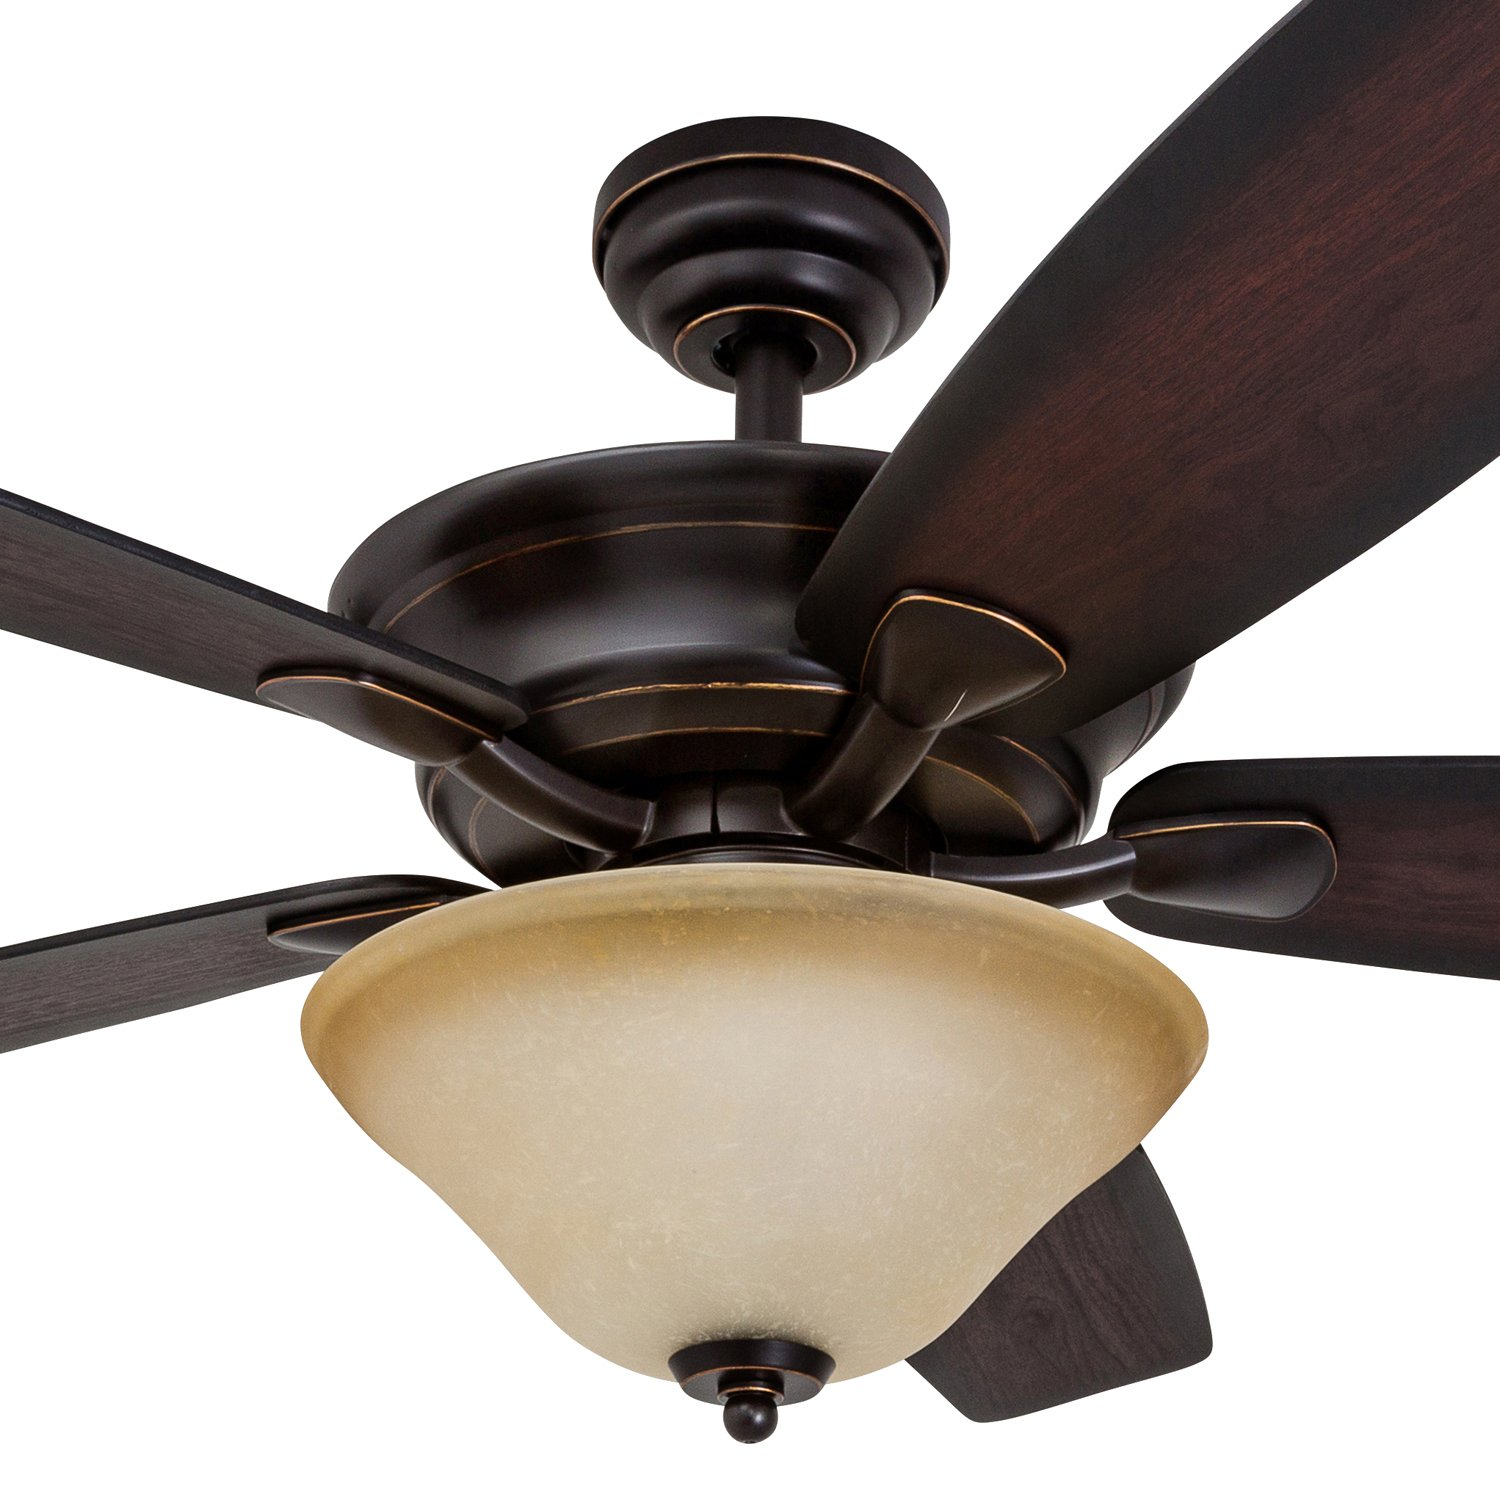 Rustic Style Cabin Inspired Dark Elm//Chestnut Blades Matte Black Faux Leather Lamp Shades Prominence Home 41110-01 Almer Point 52 Lodge Ceiling Fan with 3-Light